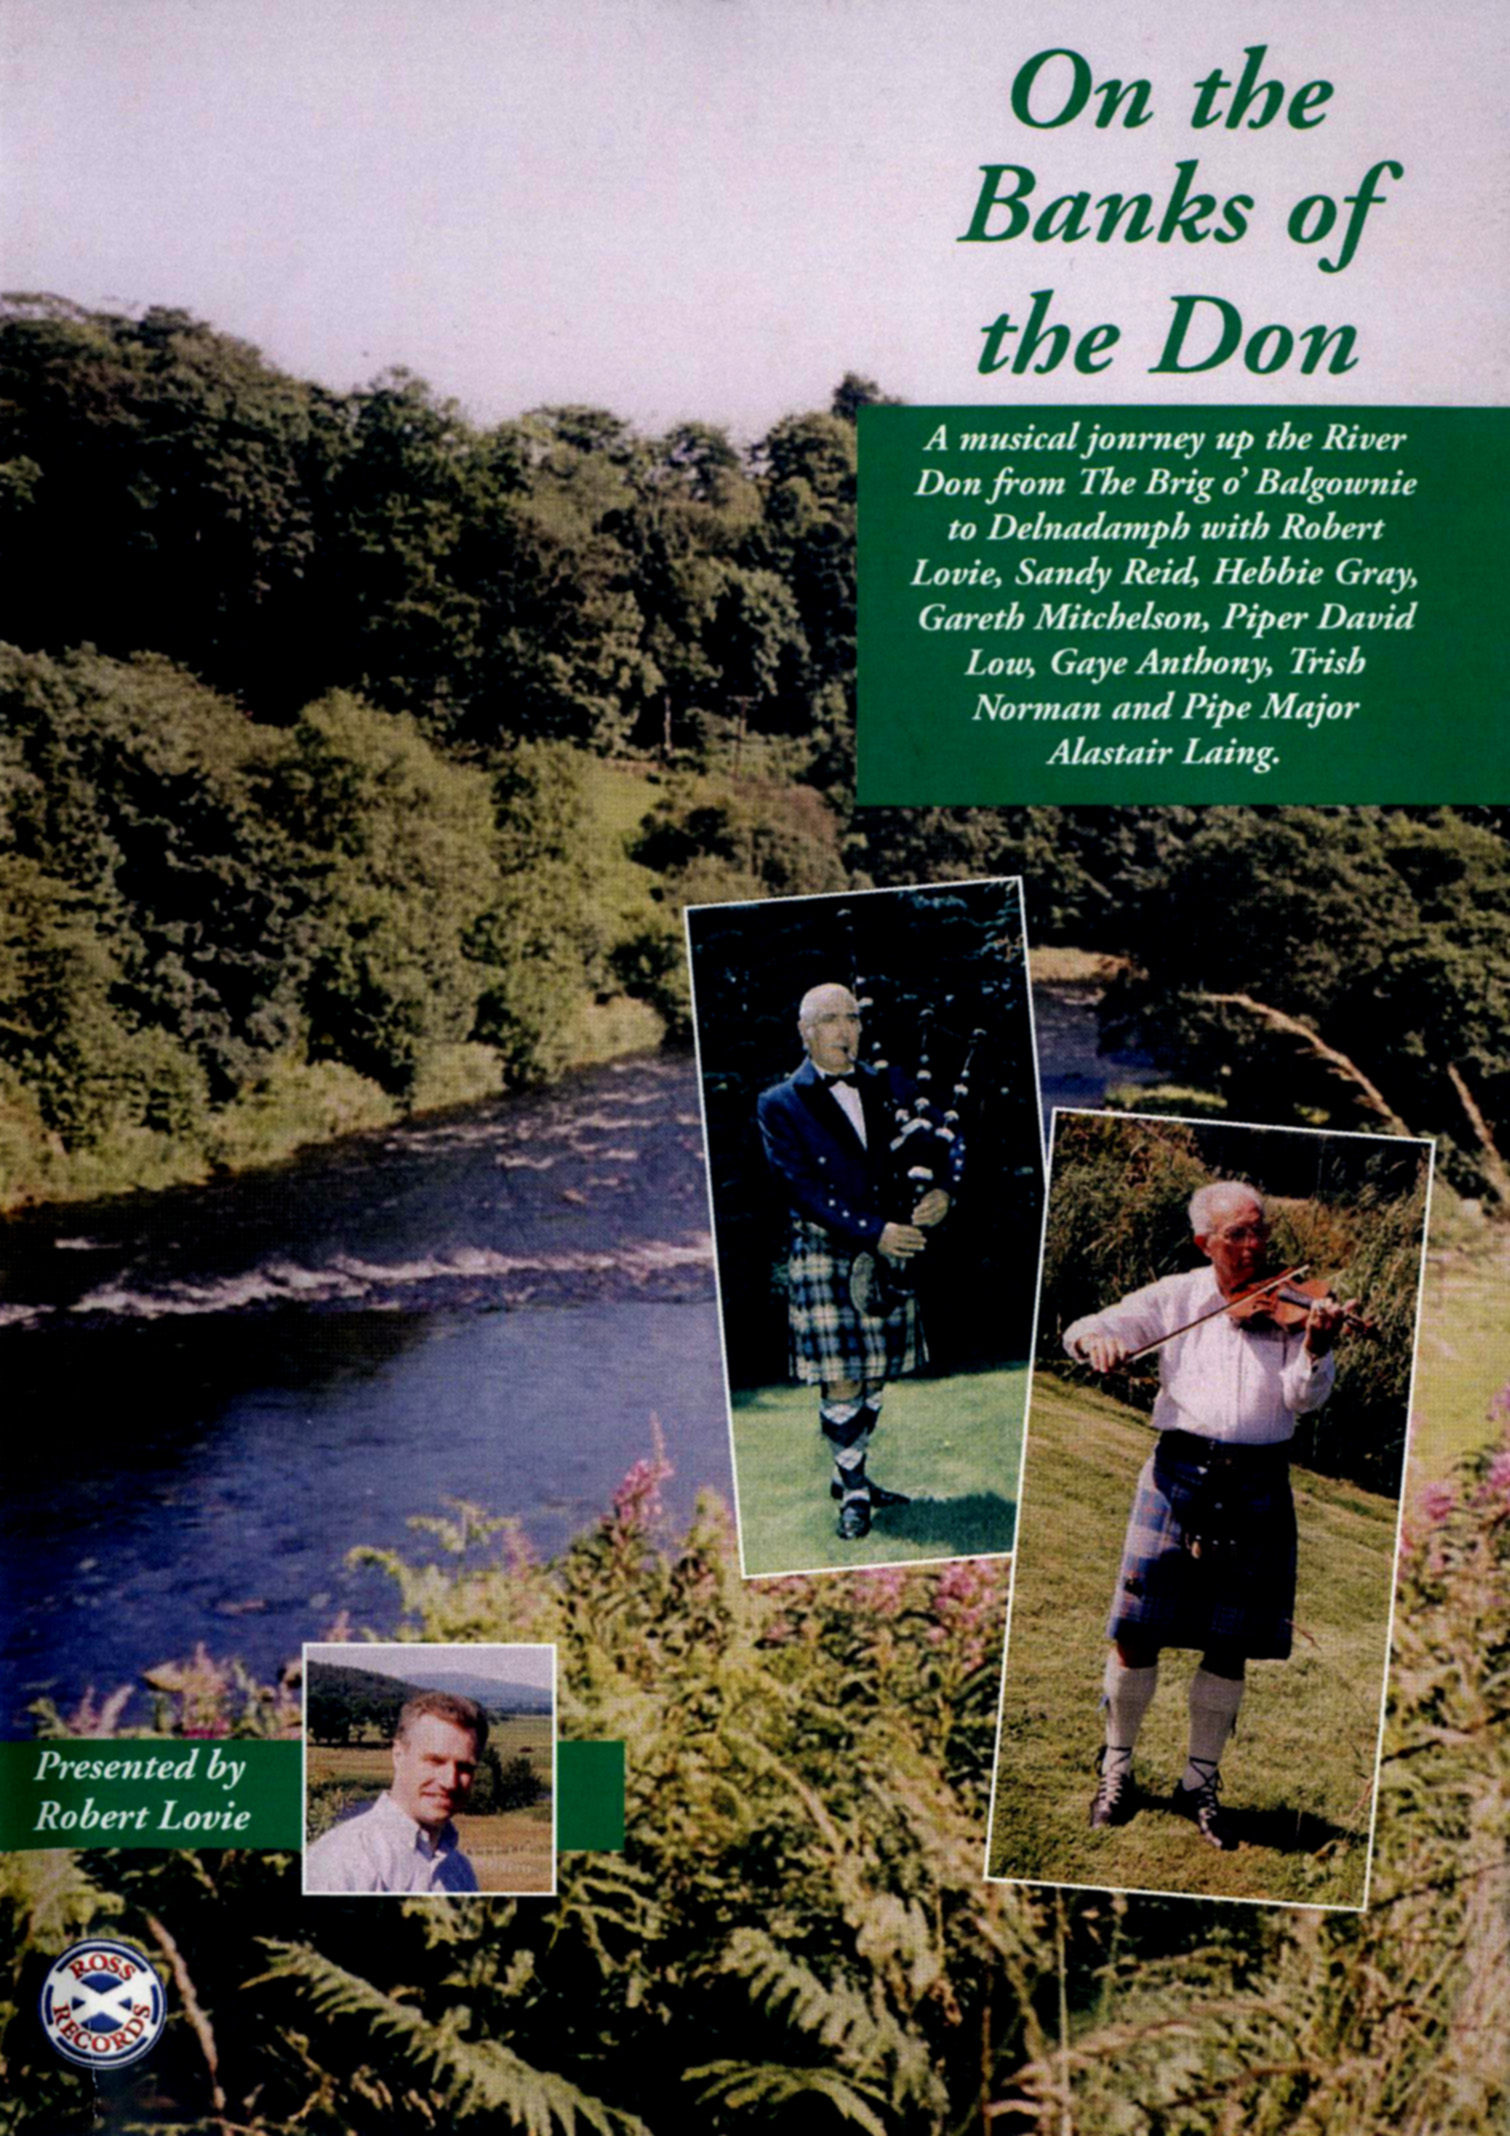 On the Banks of the Don